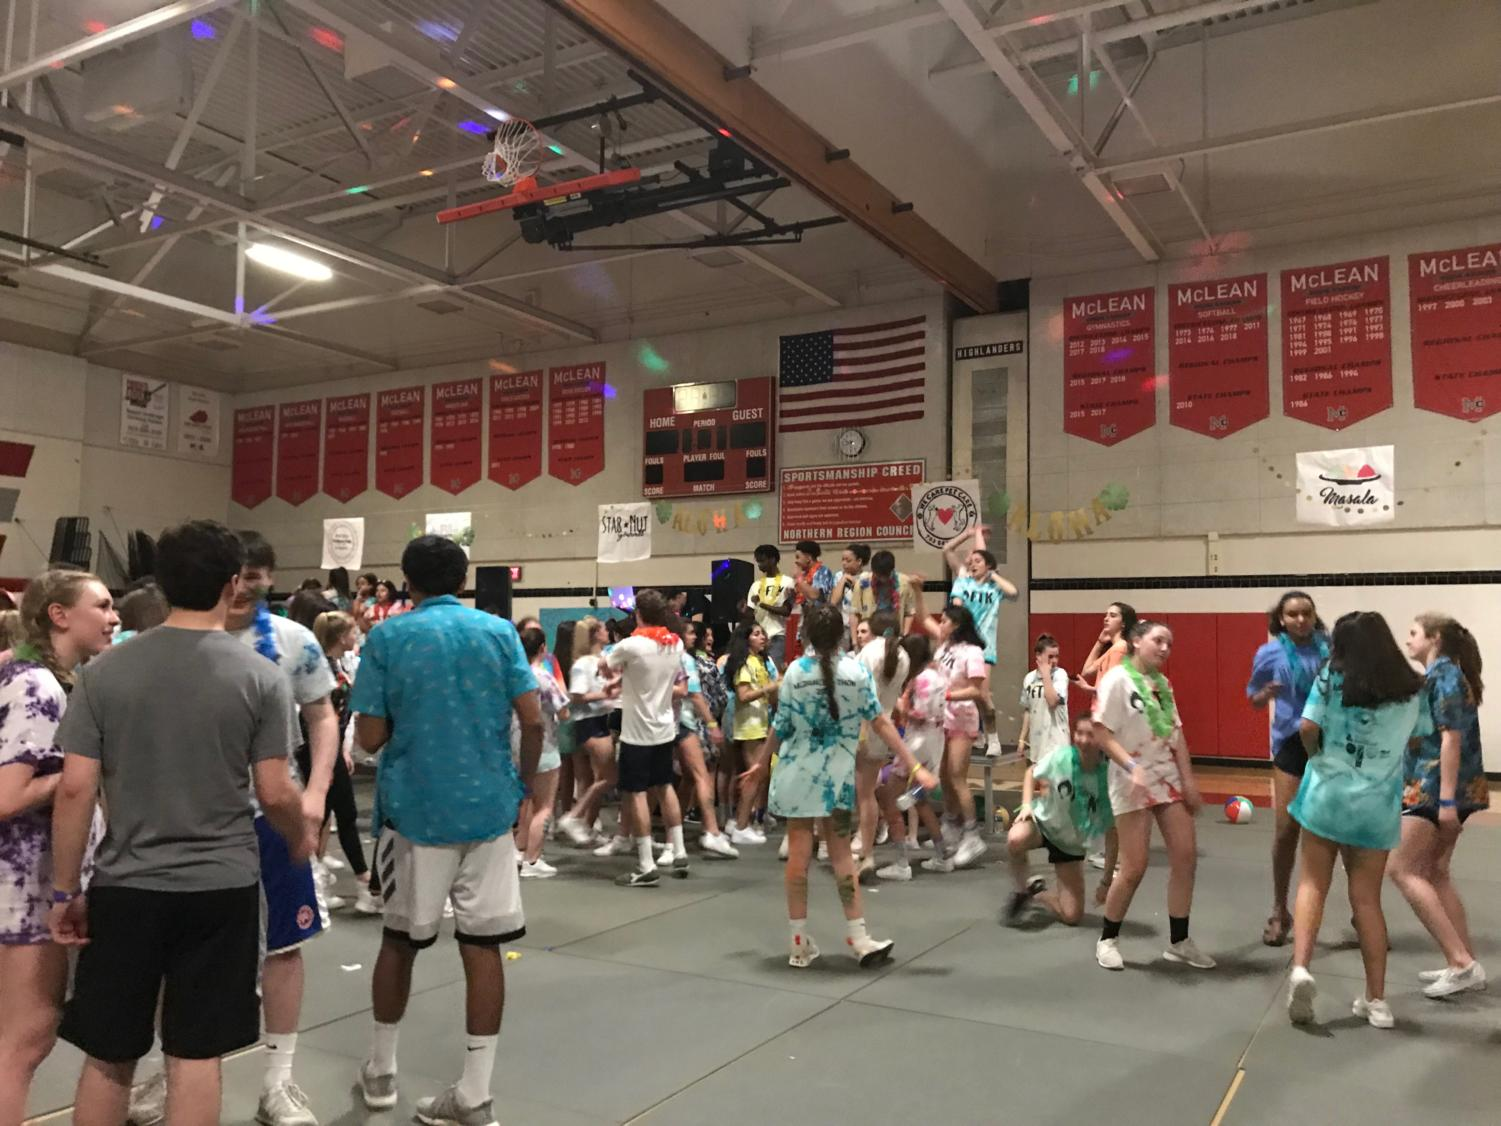 Leadership students and their peers collect on the McDance-a-thon dance floor on March 31. The dance had a Hawaiian theme.